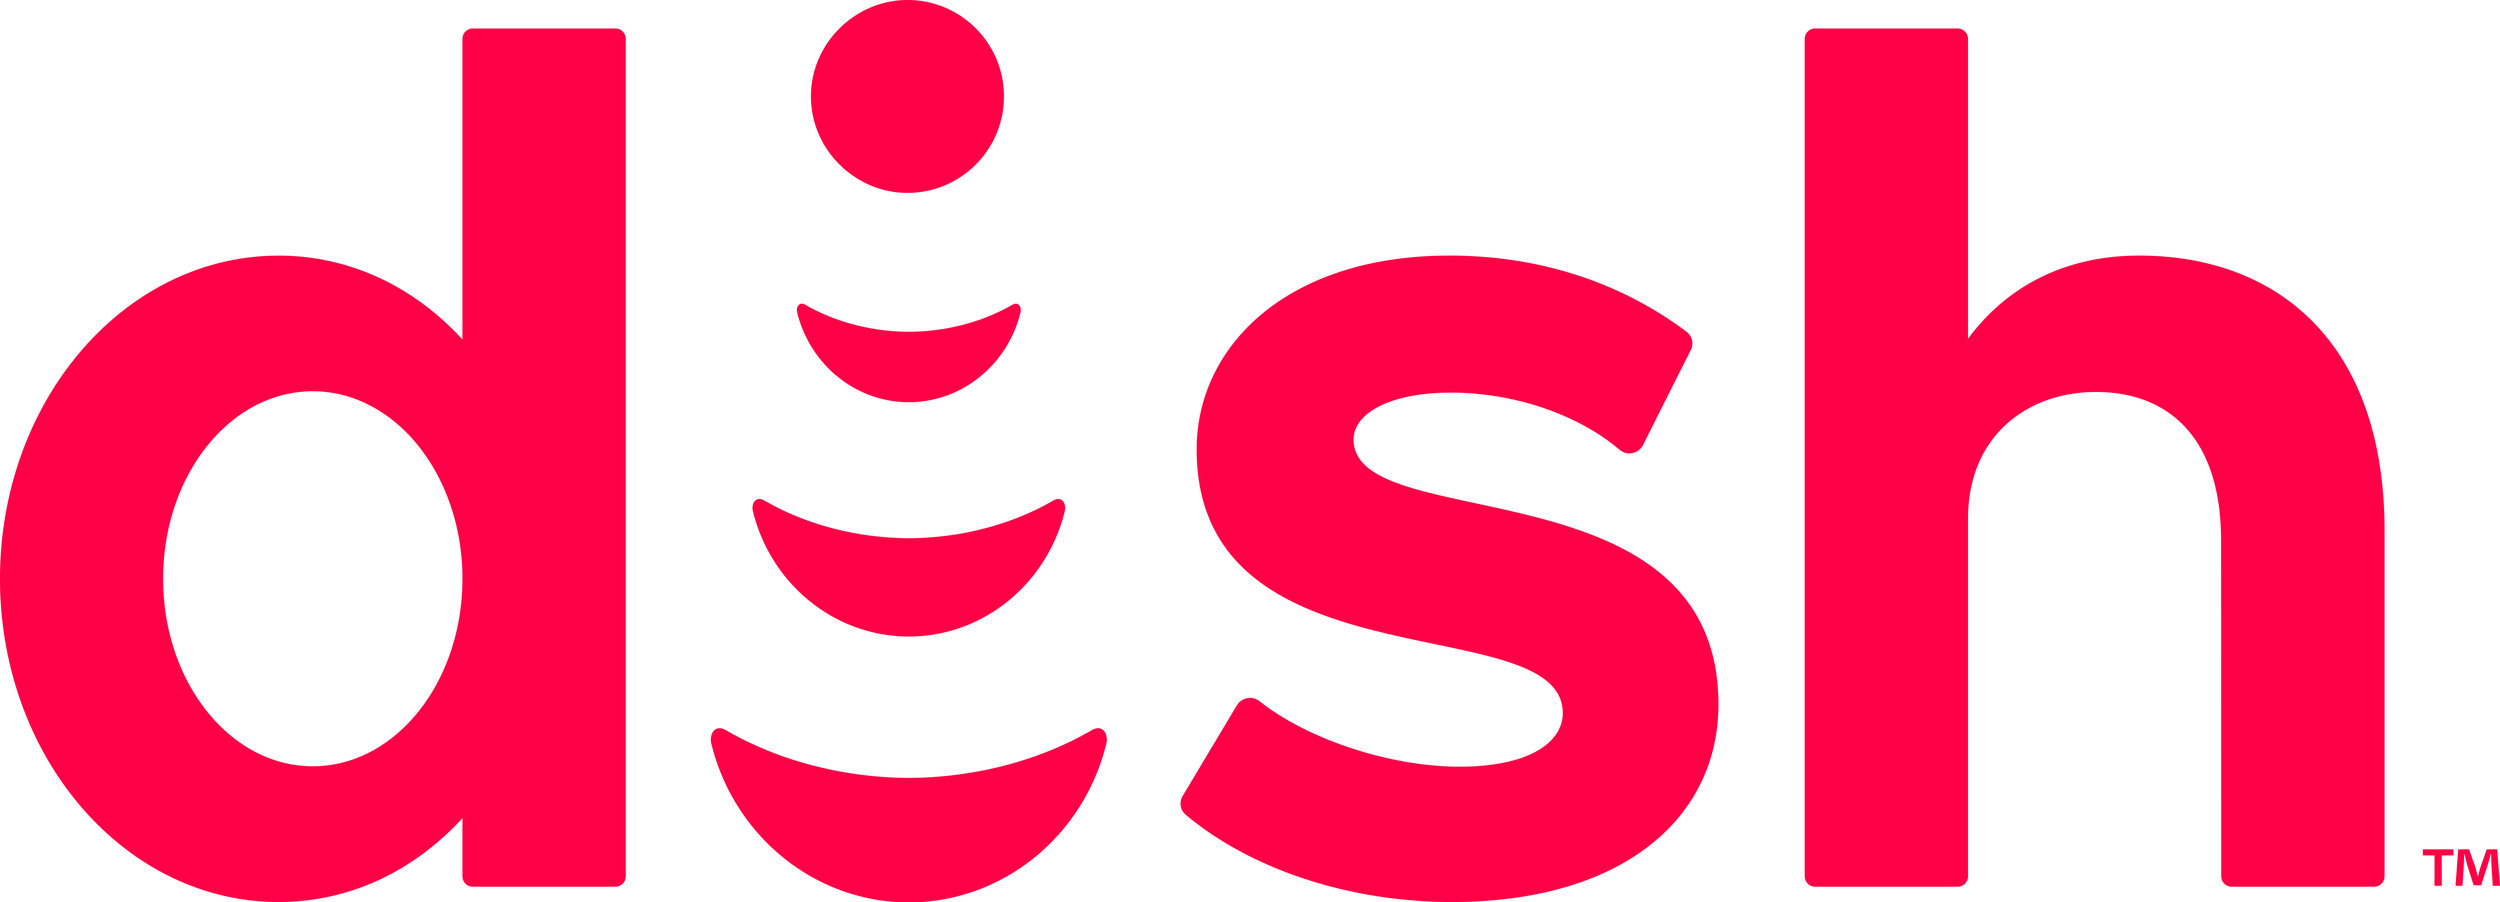 dish_wordmark_red_logo_120618-cmyk.jpg